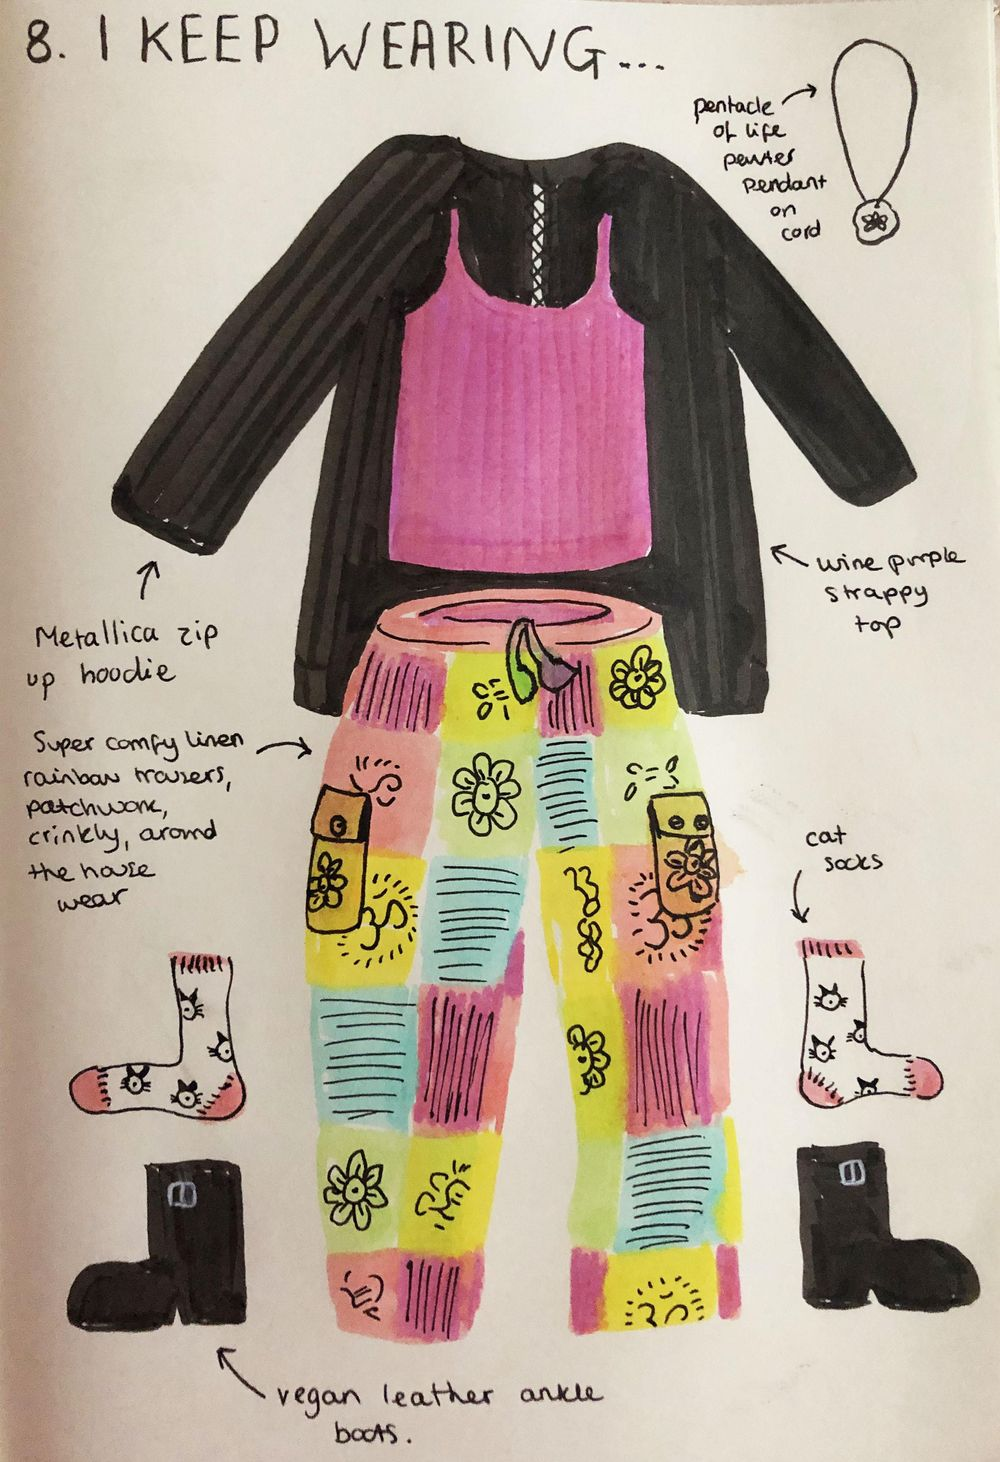 Daily Illustrated Journaling Prompts - image 7 - student project